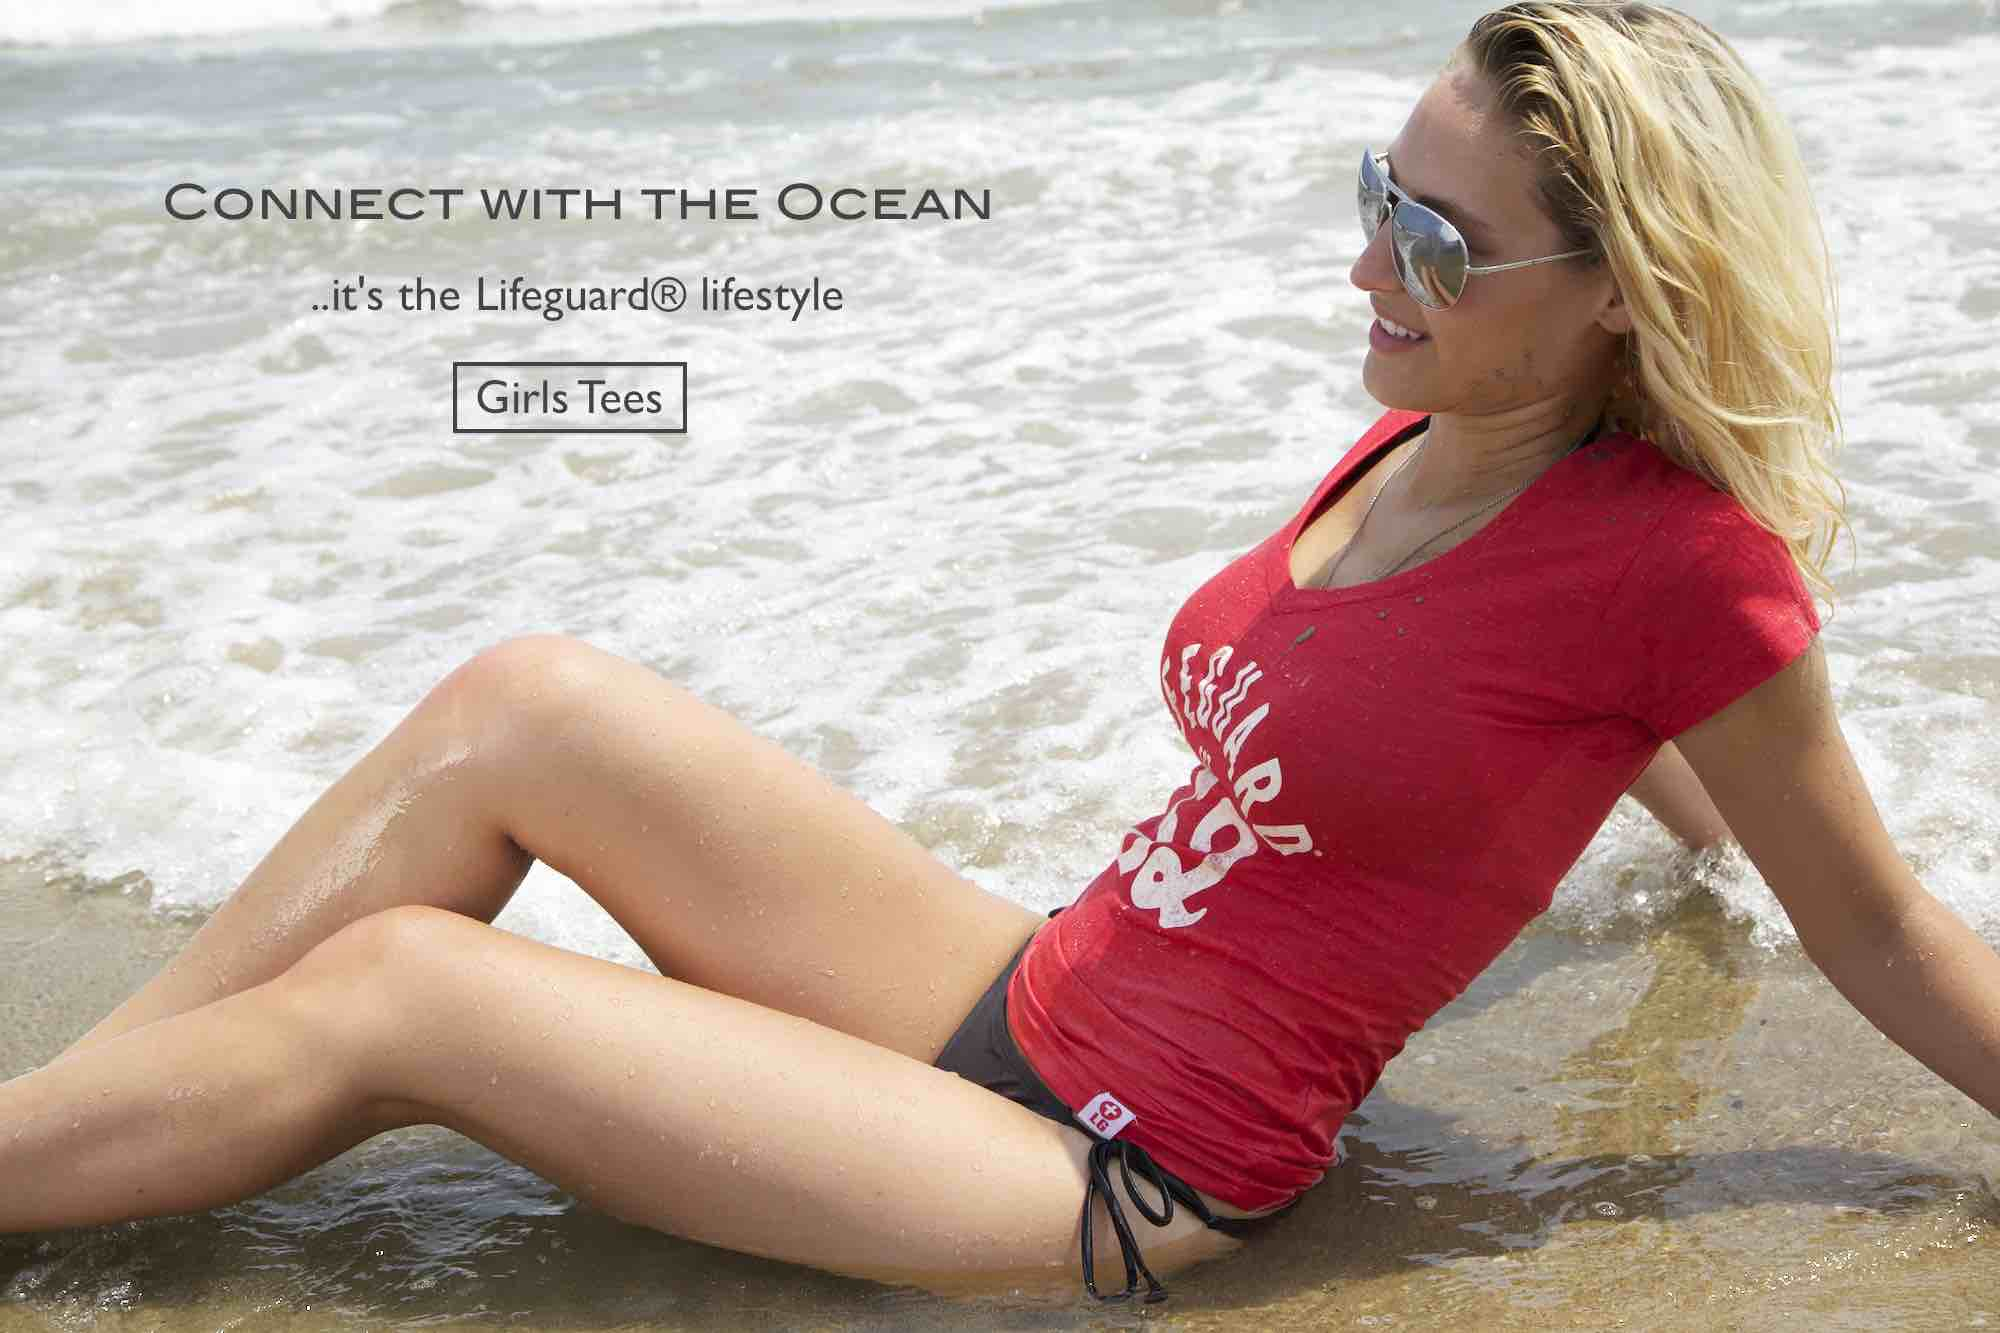 Girls Tees | Beach Lifeguard Apparel Online Store